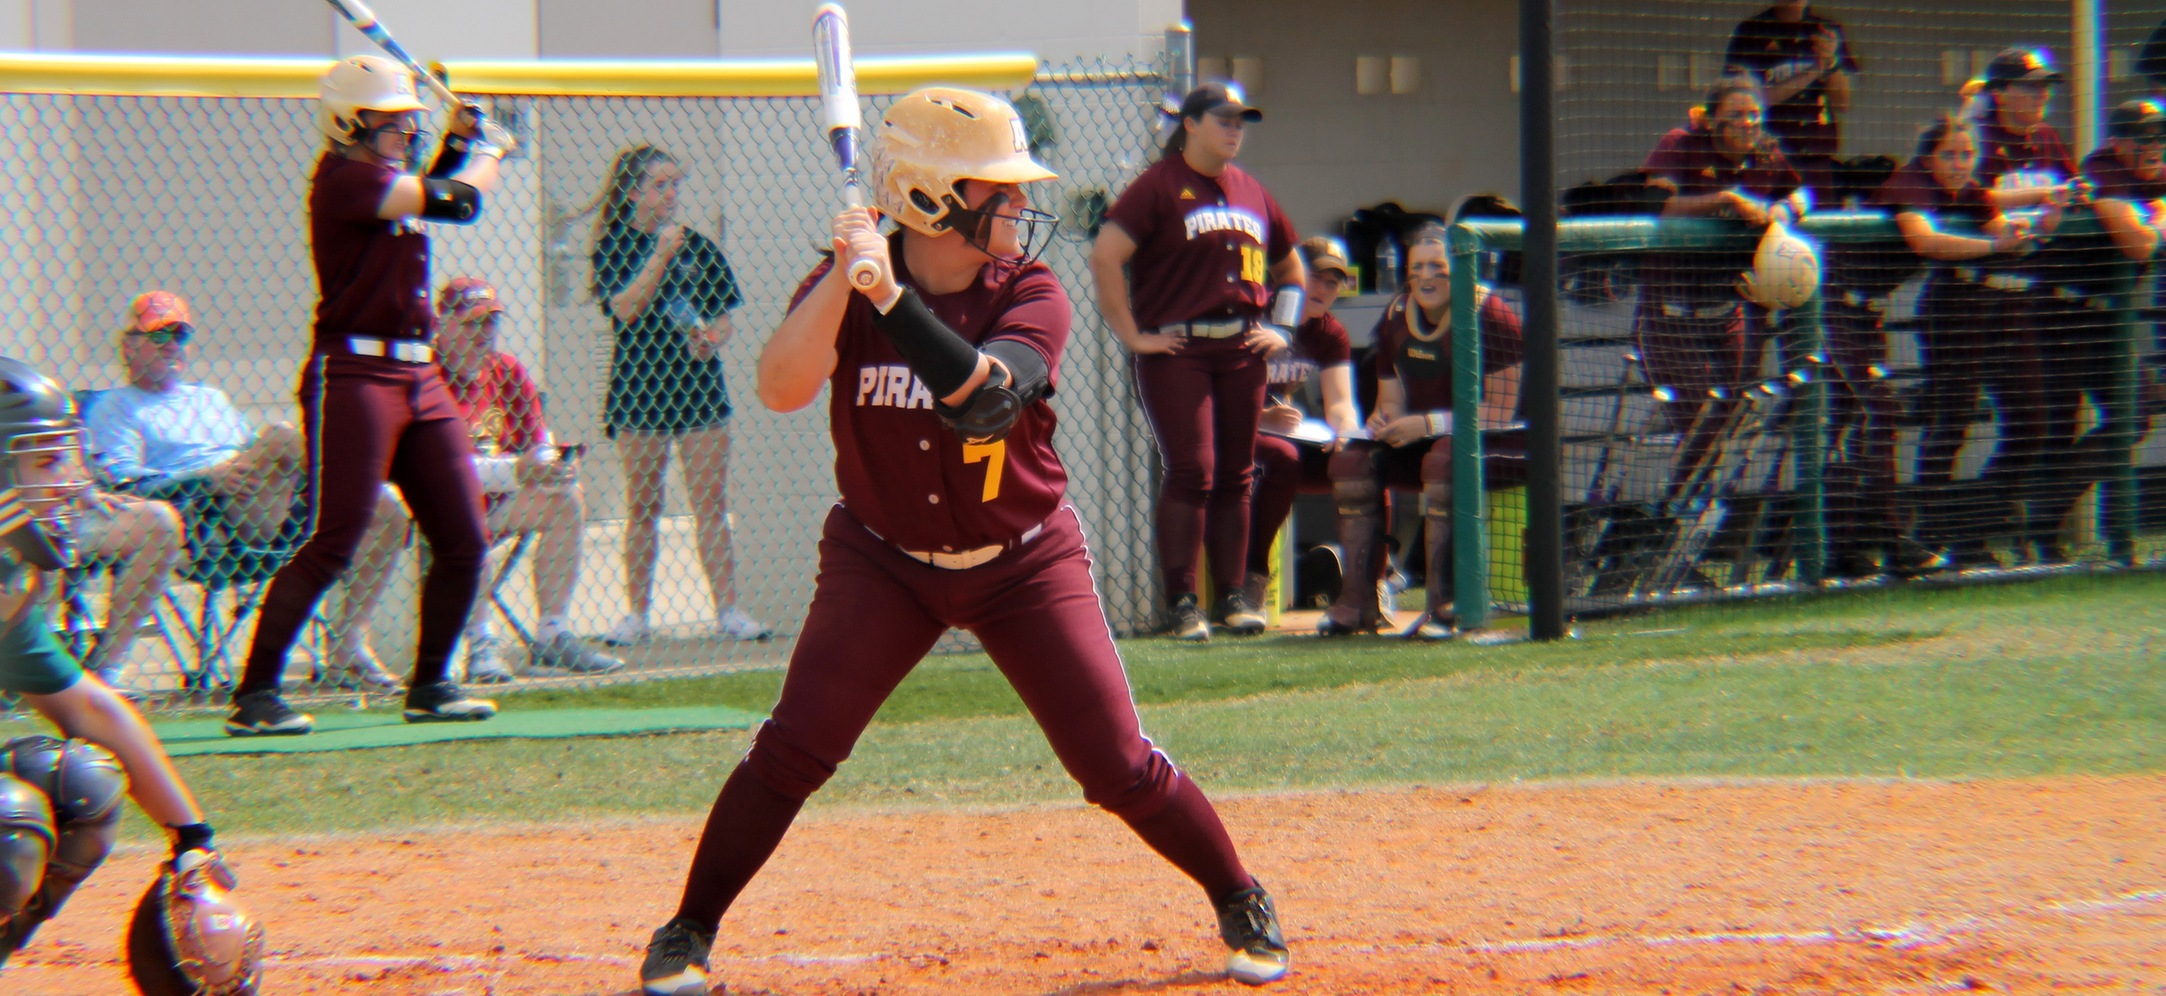 Pirate Softball Splits At No. 4 North Georgia On Sunday